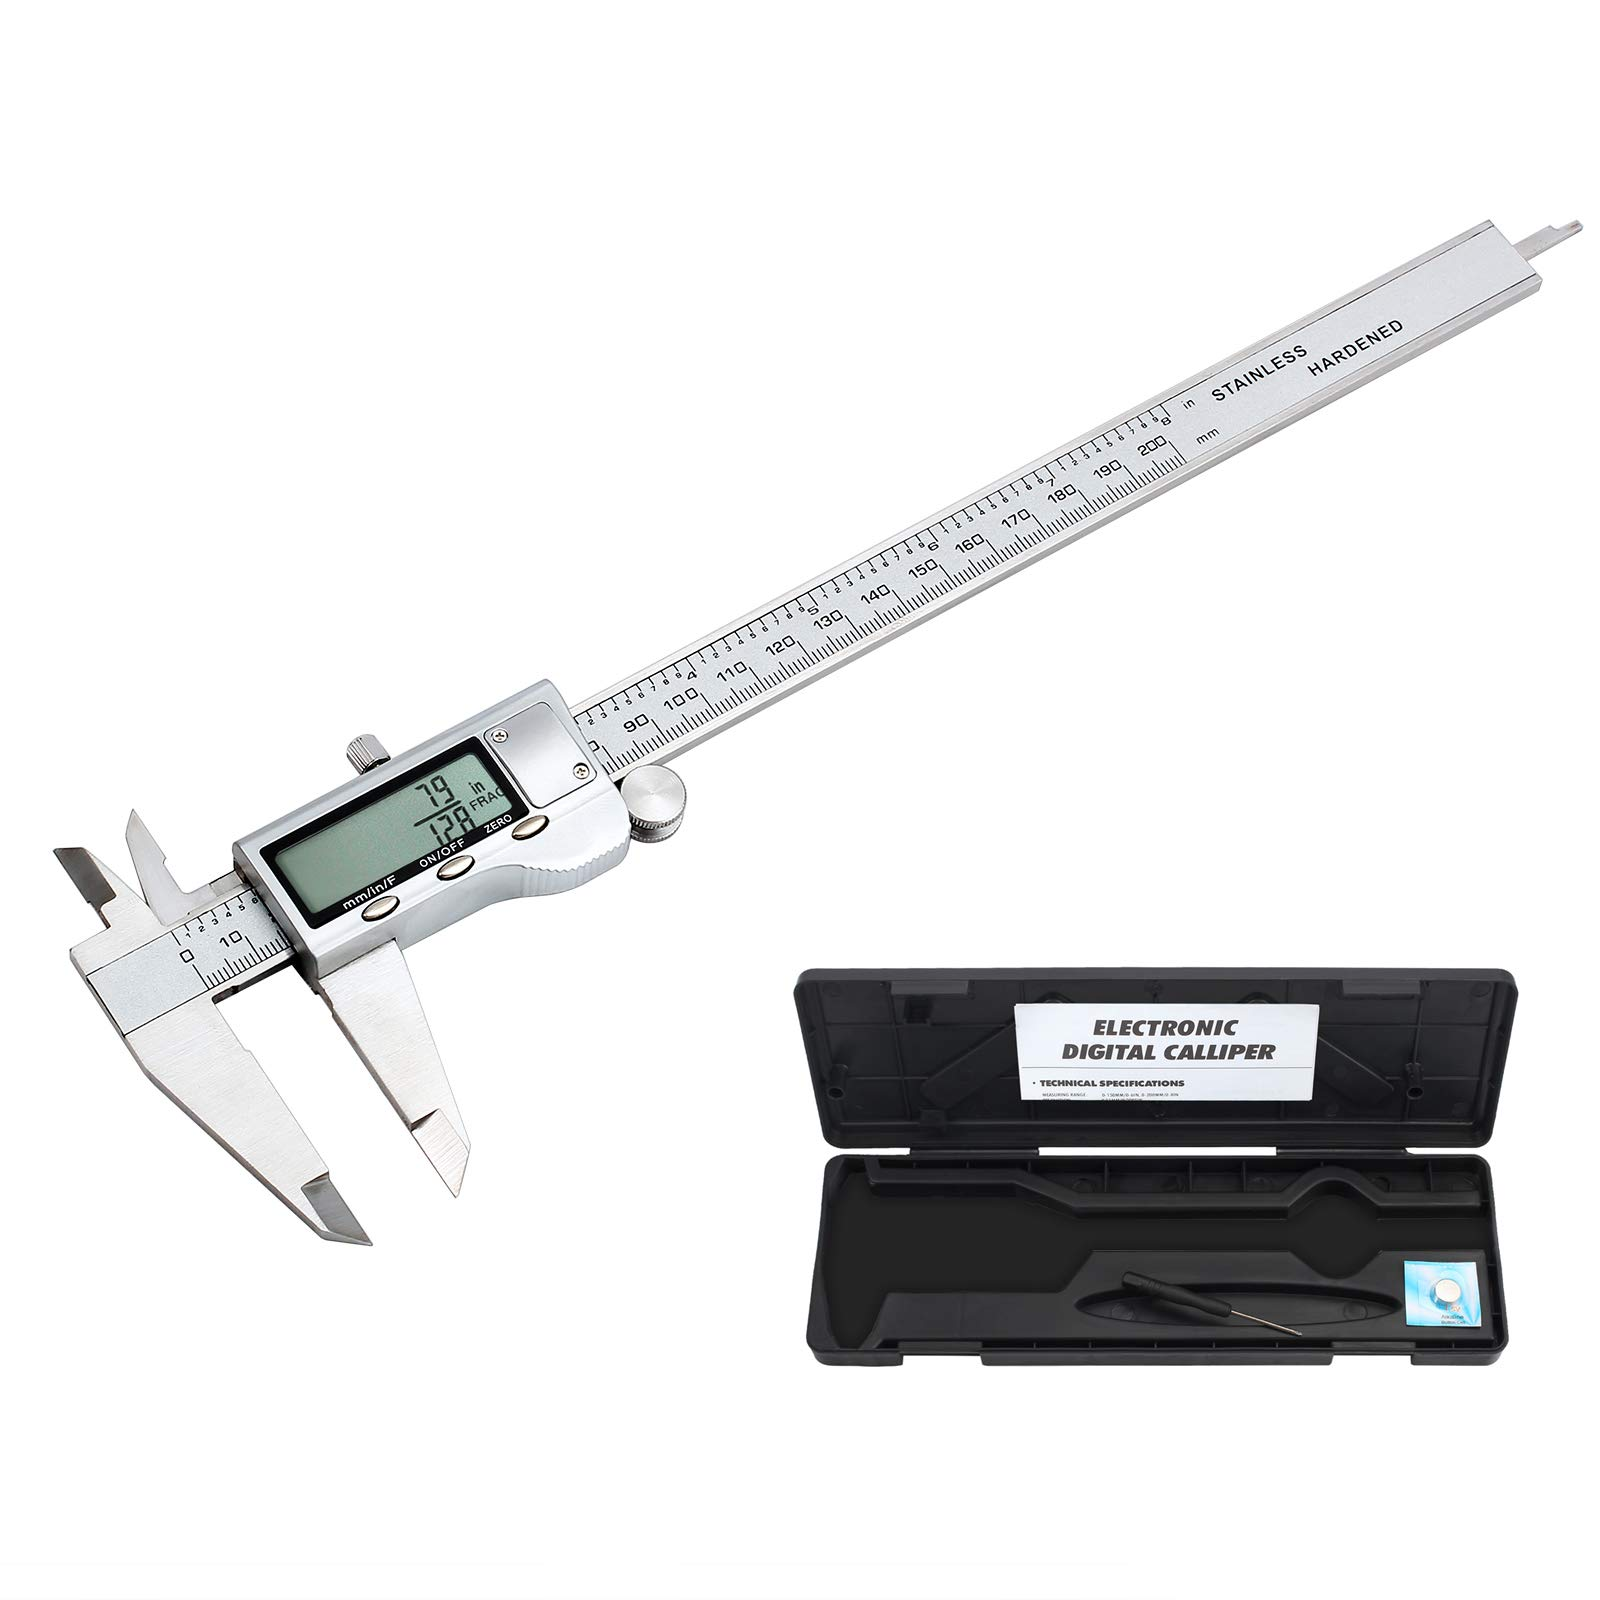 PROSTER Digital Vernier Caliper 200 mm/ 8 inch Stainless Steel Electronic Industrial Caliper Fractions/Inch/Metric Conversion Measuring Tool for Length Width Depth Inner Diameter Outer Diameter